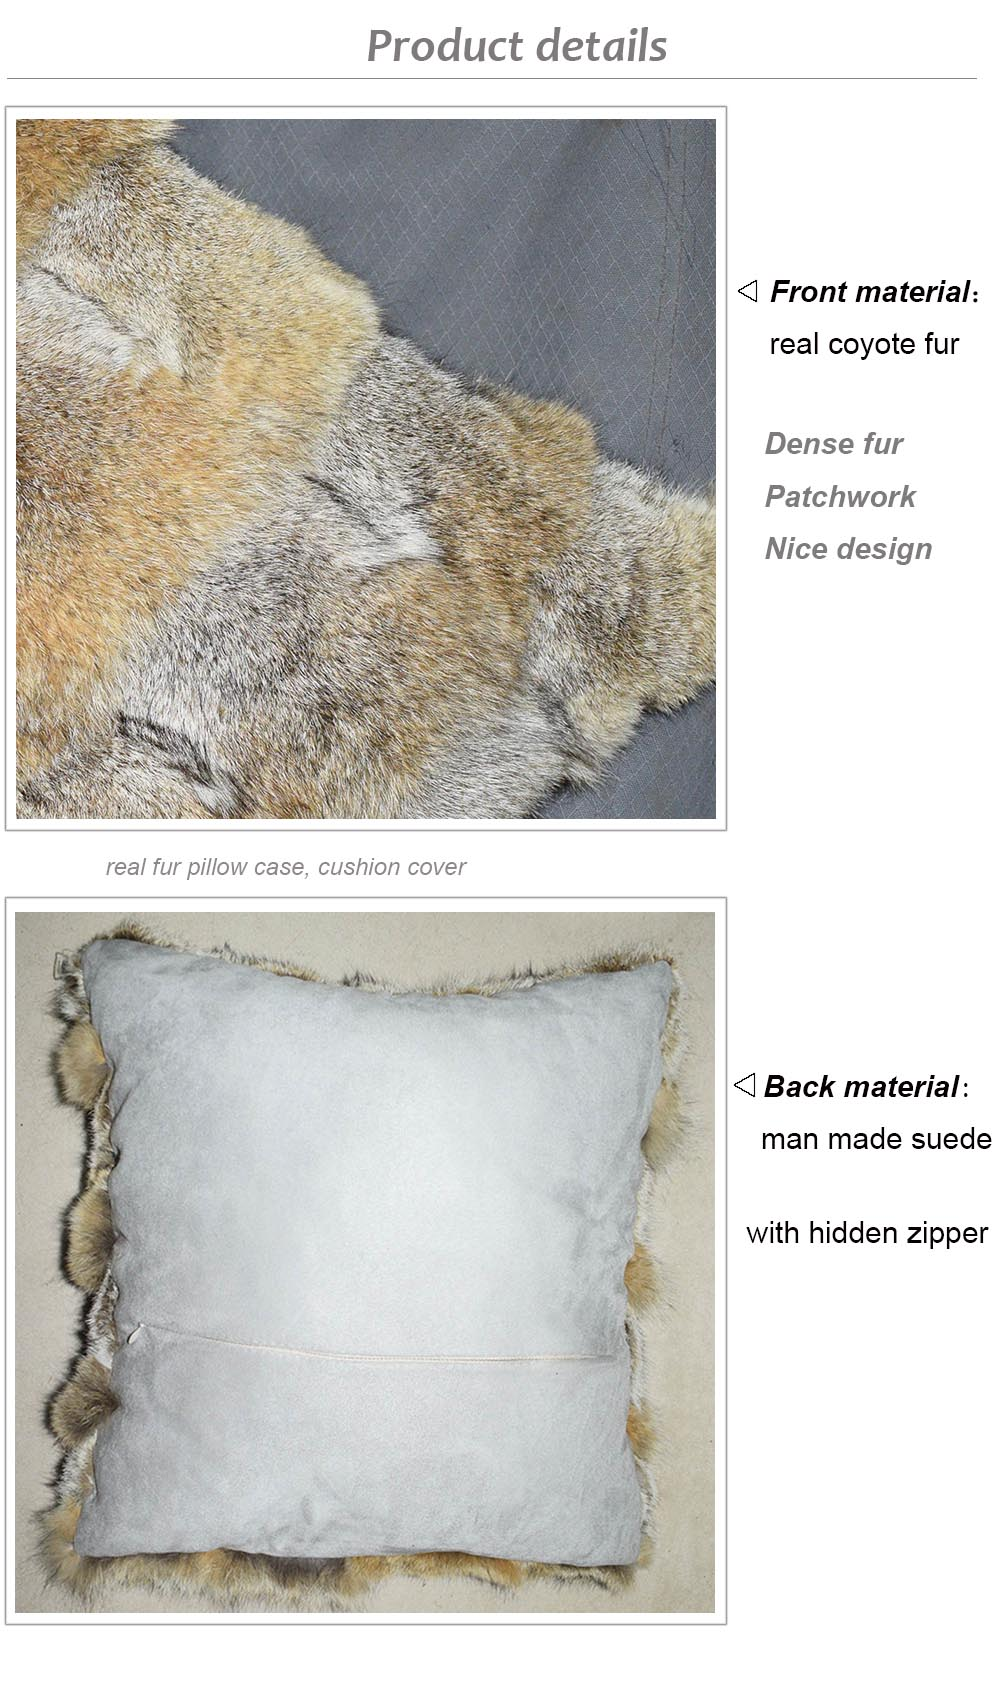 coyote fur cushion details